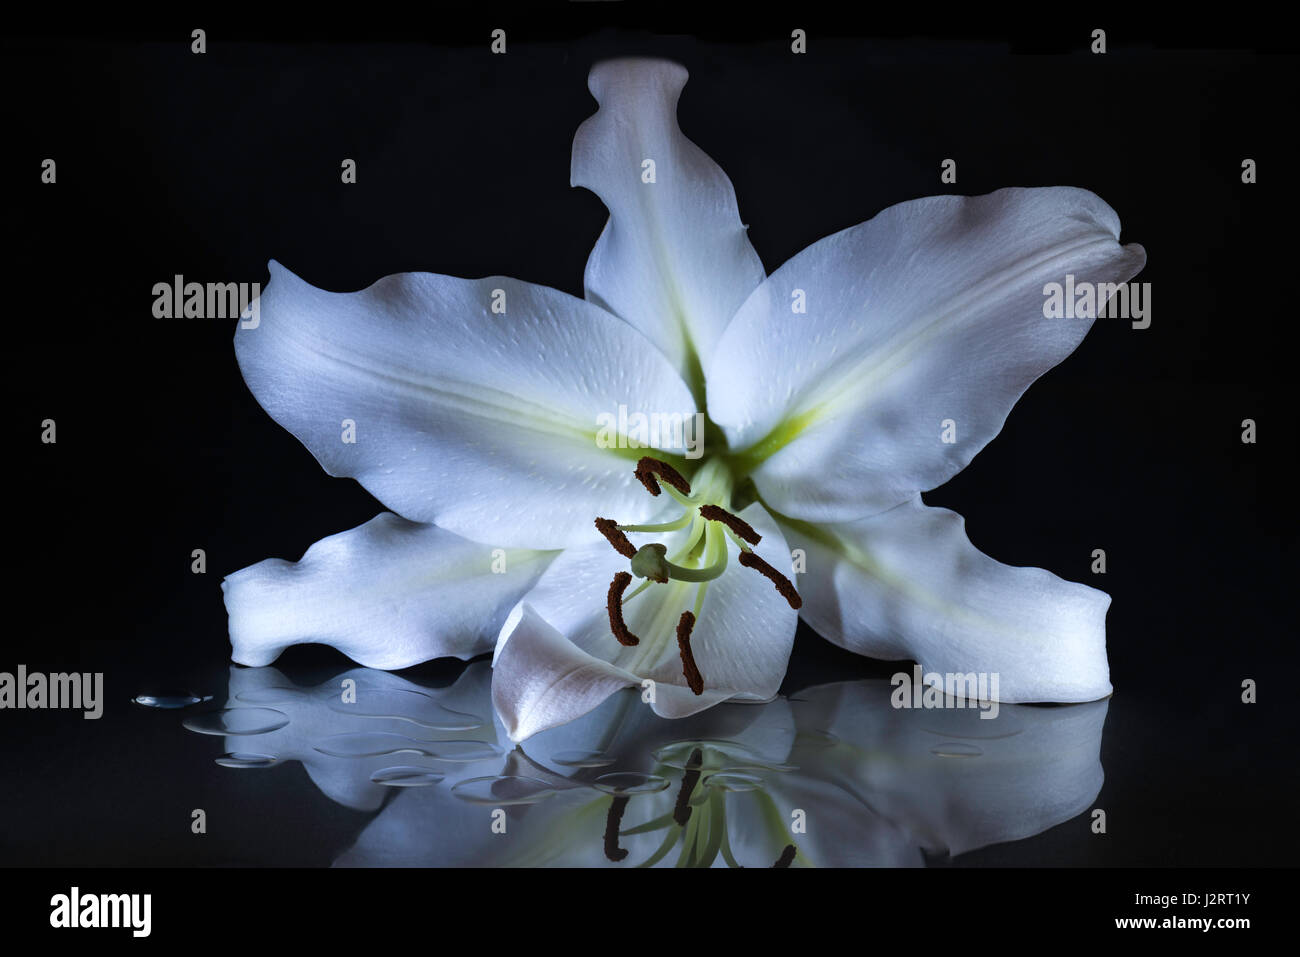 Black white water lily flower stock photos black white water lily white lily flower emphasizing the beautiful form and structure of the carpel and stamen with petals izmirmasajfo